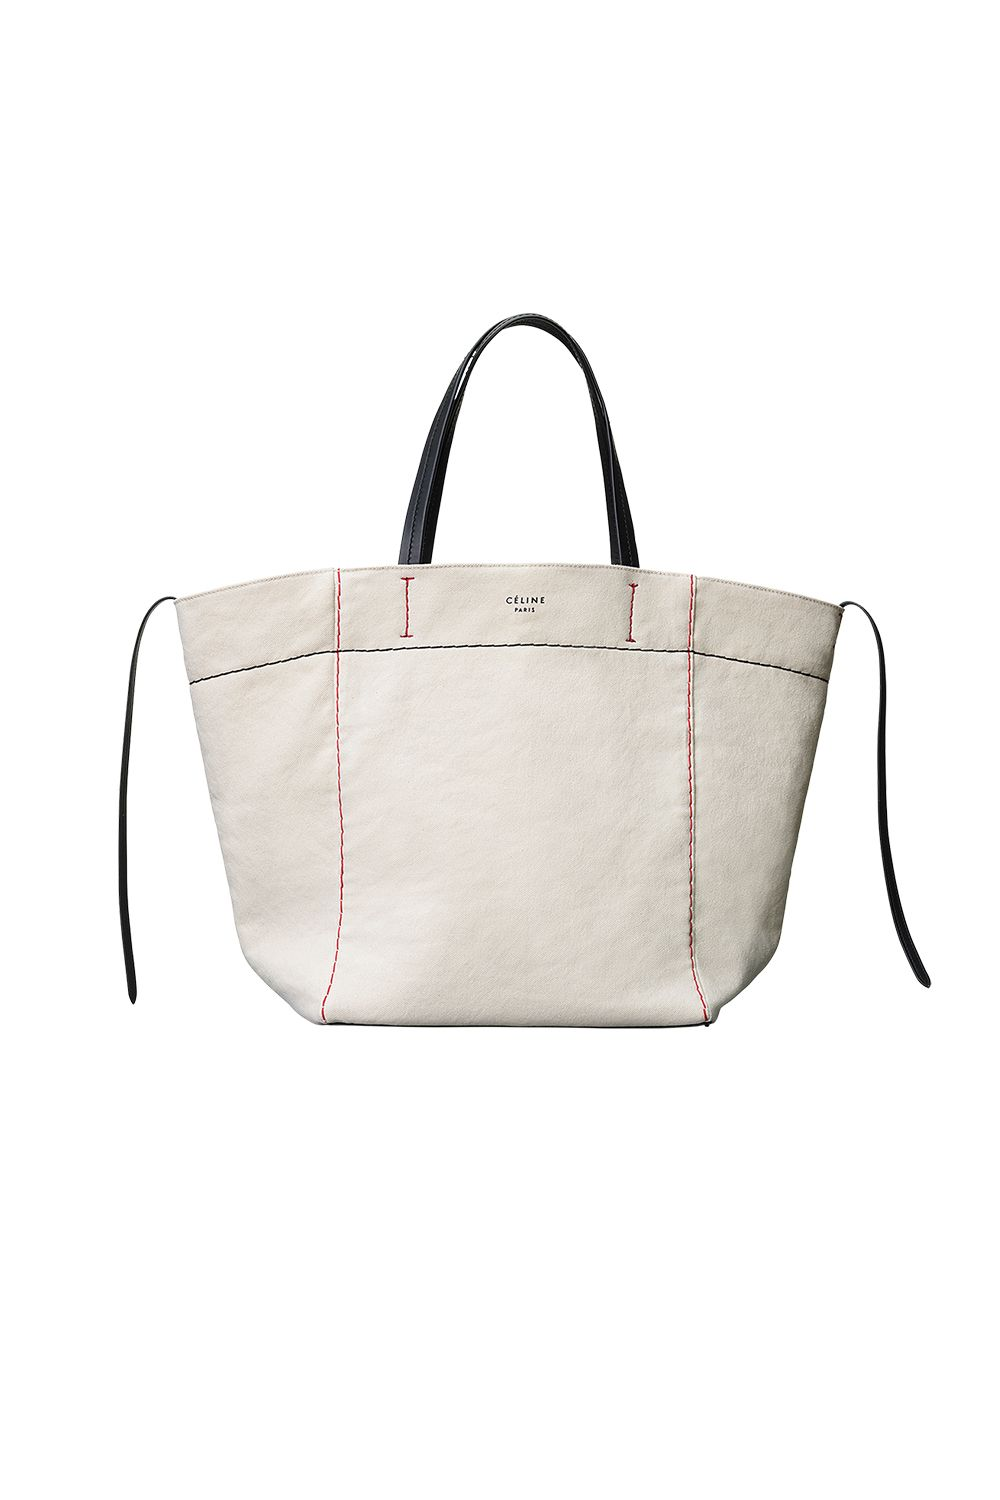 """<p>I love a mini bag, but this perfectly minimal tote holds a few moreessentials.</p><p><em data-redactor-tag=""""em"""" data-verified=""""redactor"""">Canvas tote, CÉLINE,</em><em data-redactor-tag=""""em"""" data-verified=""""redactor"""">at Céline, NYC</em><span data-redactor-tag=""""span""""></span></p>"""